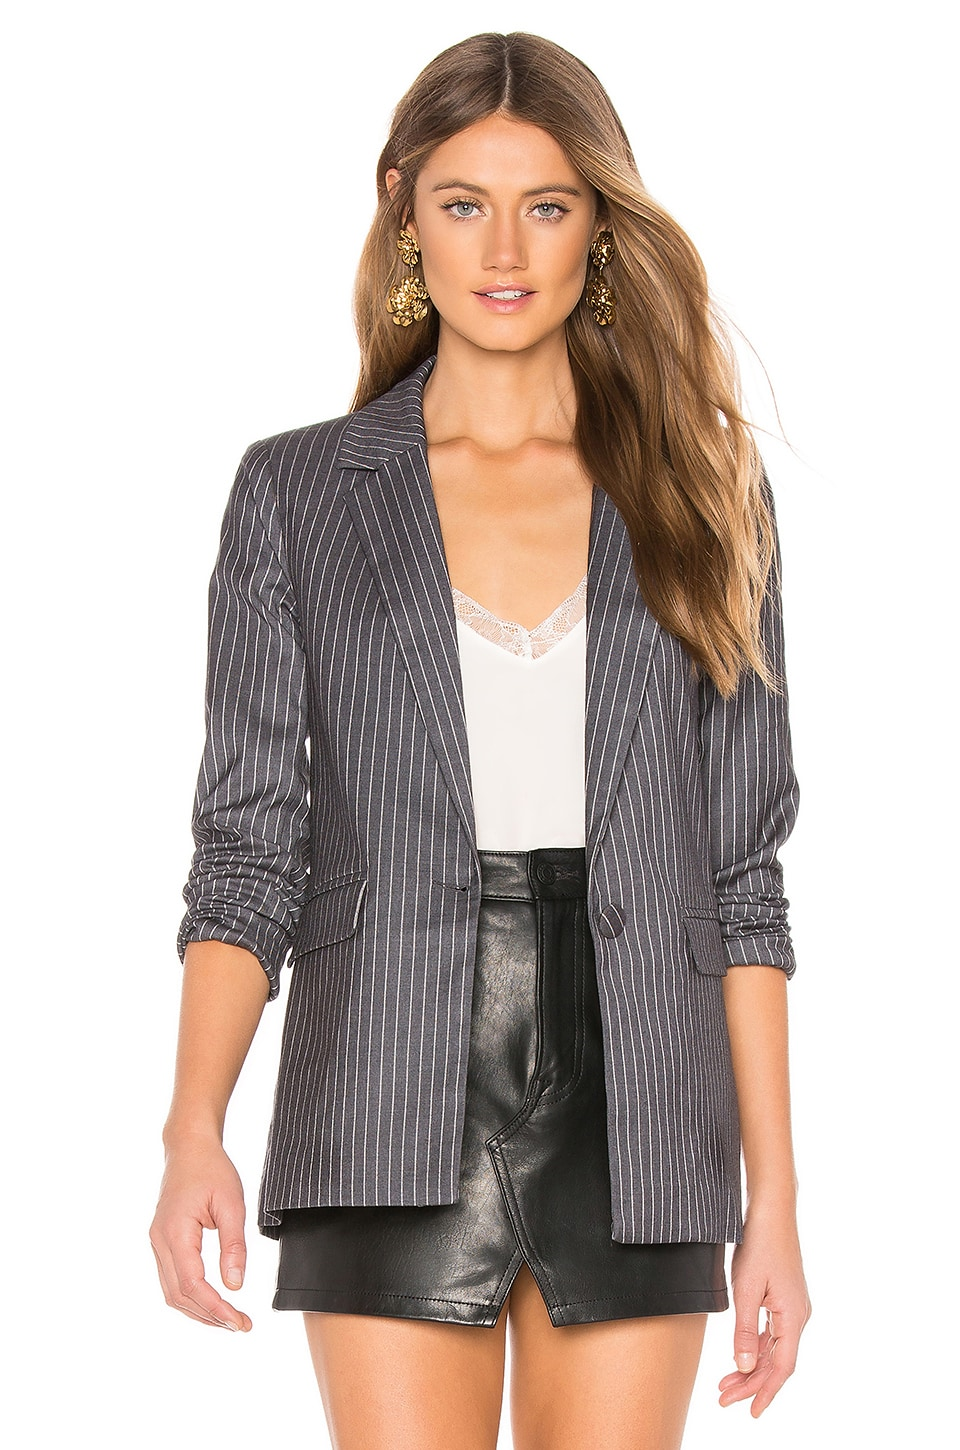 L'Academie The Lynn Blazer in Grey & White